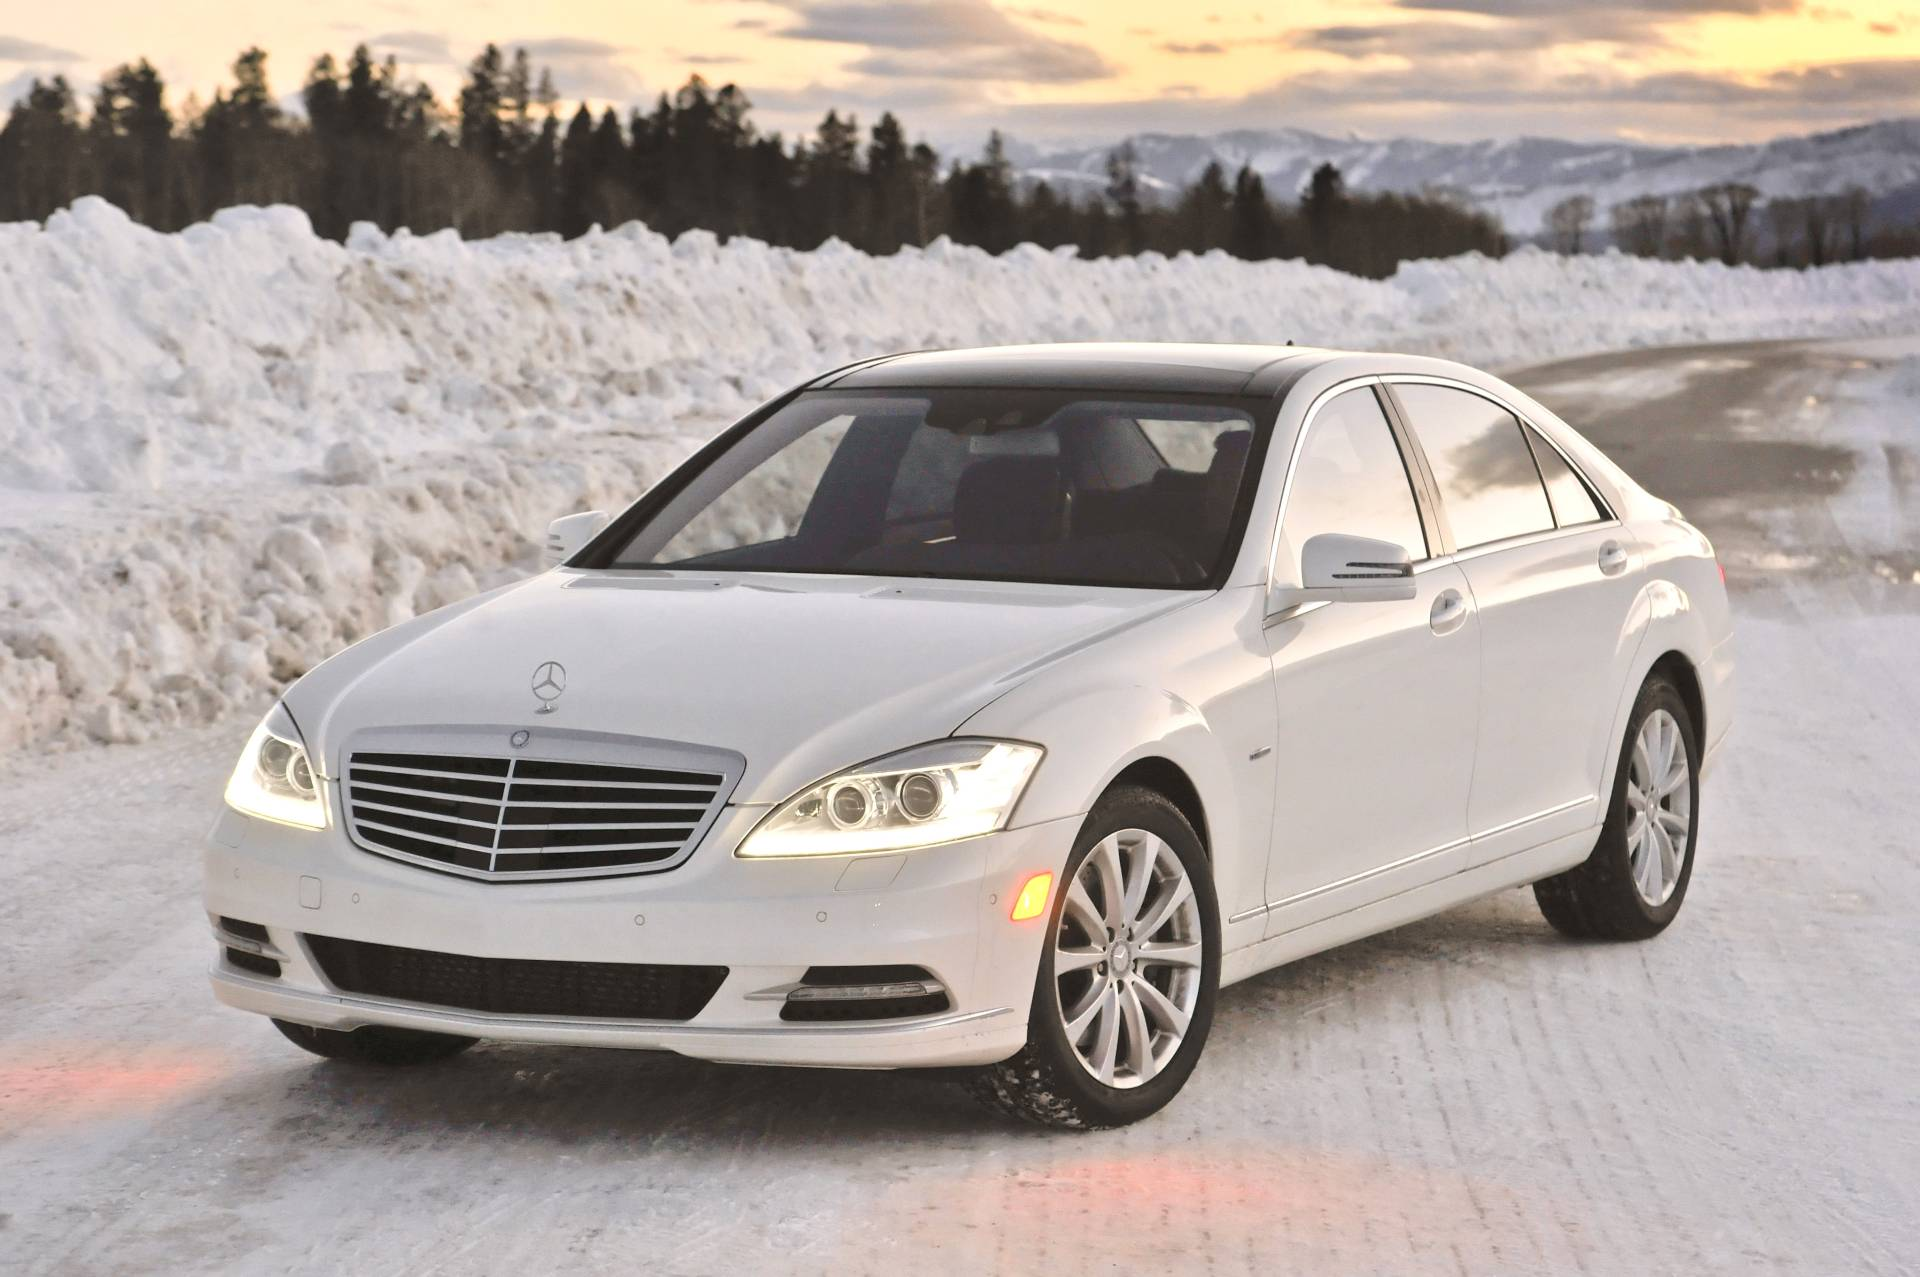 2013 mercedes benz s class s350 bluetec news and information. Black Bedroom Furniture Sets. Home Design Ideas